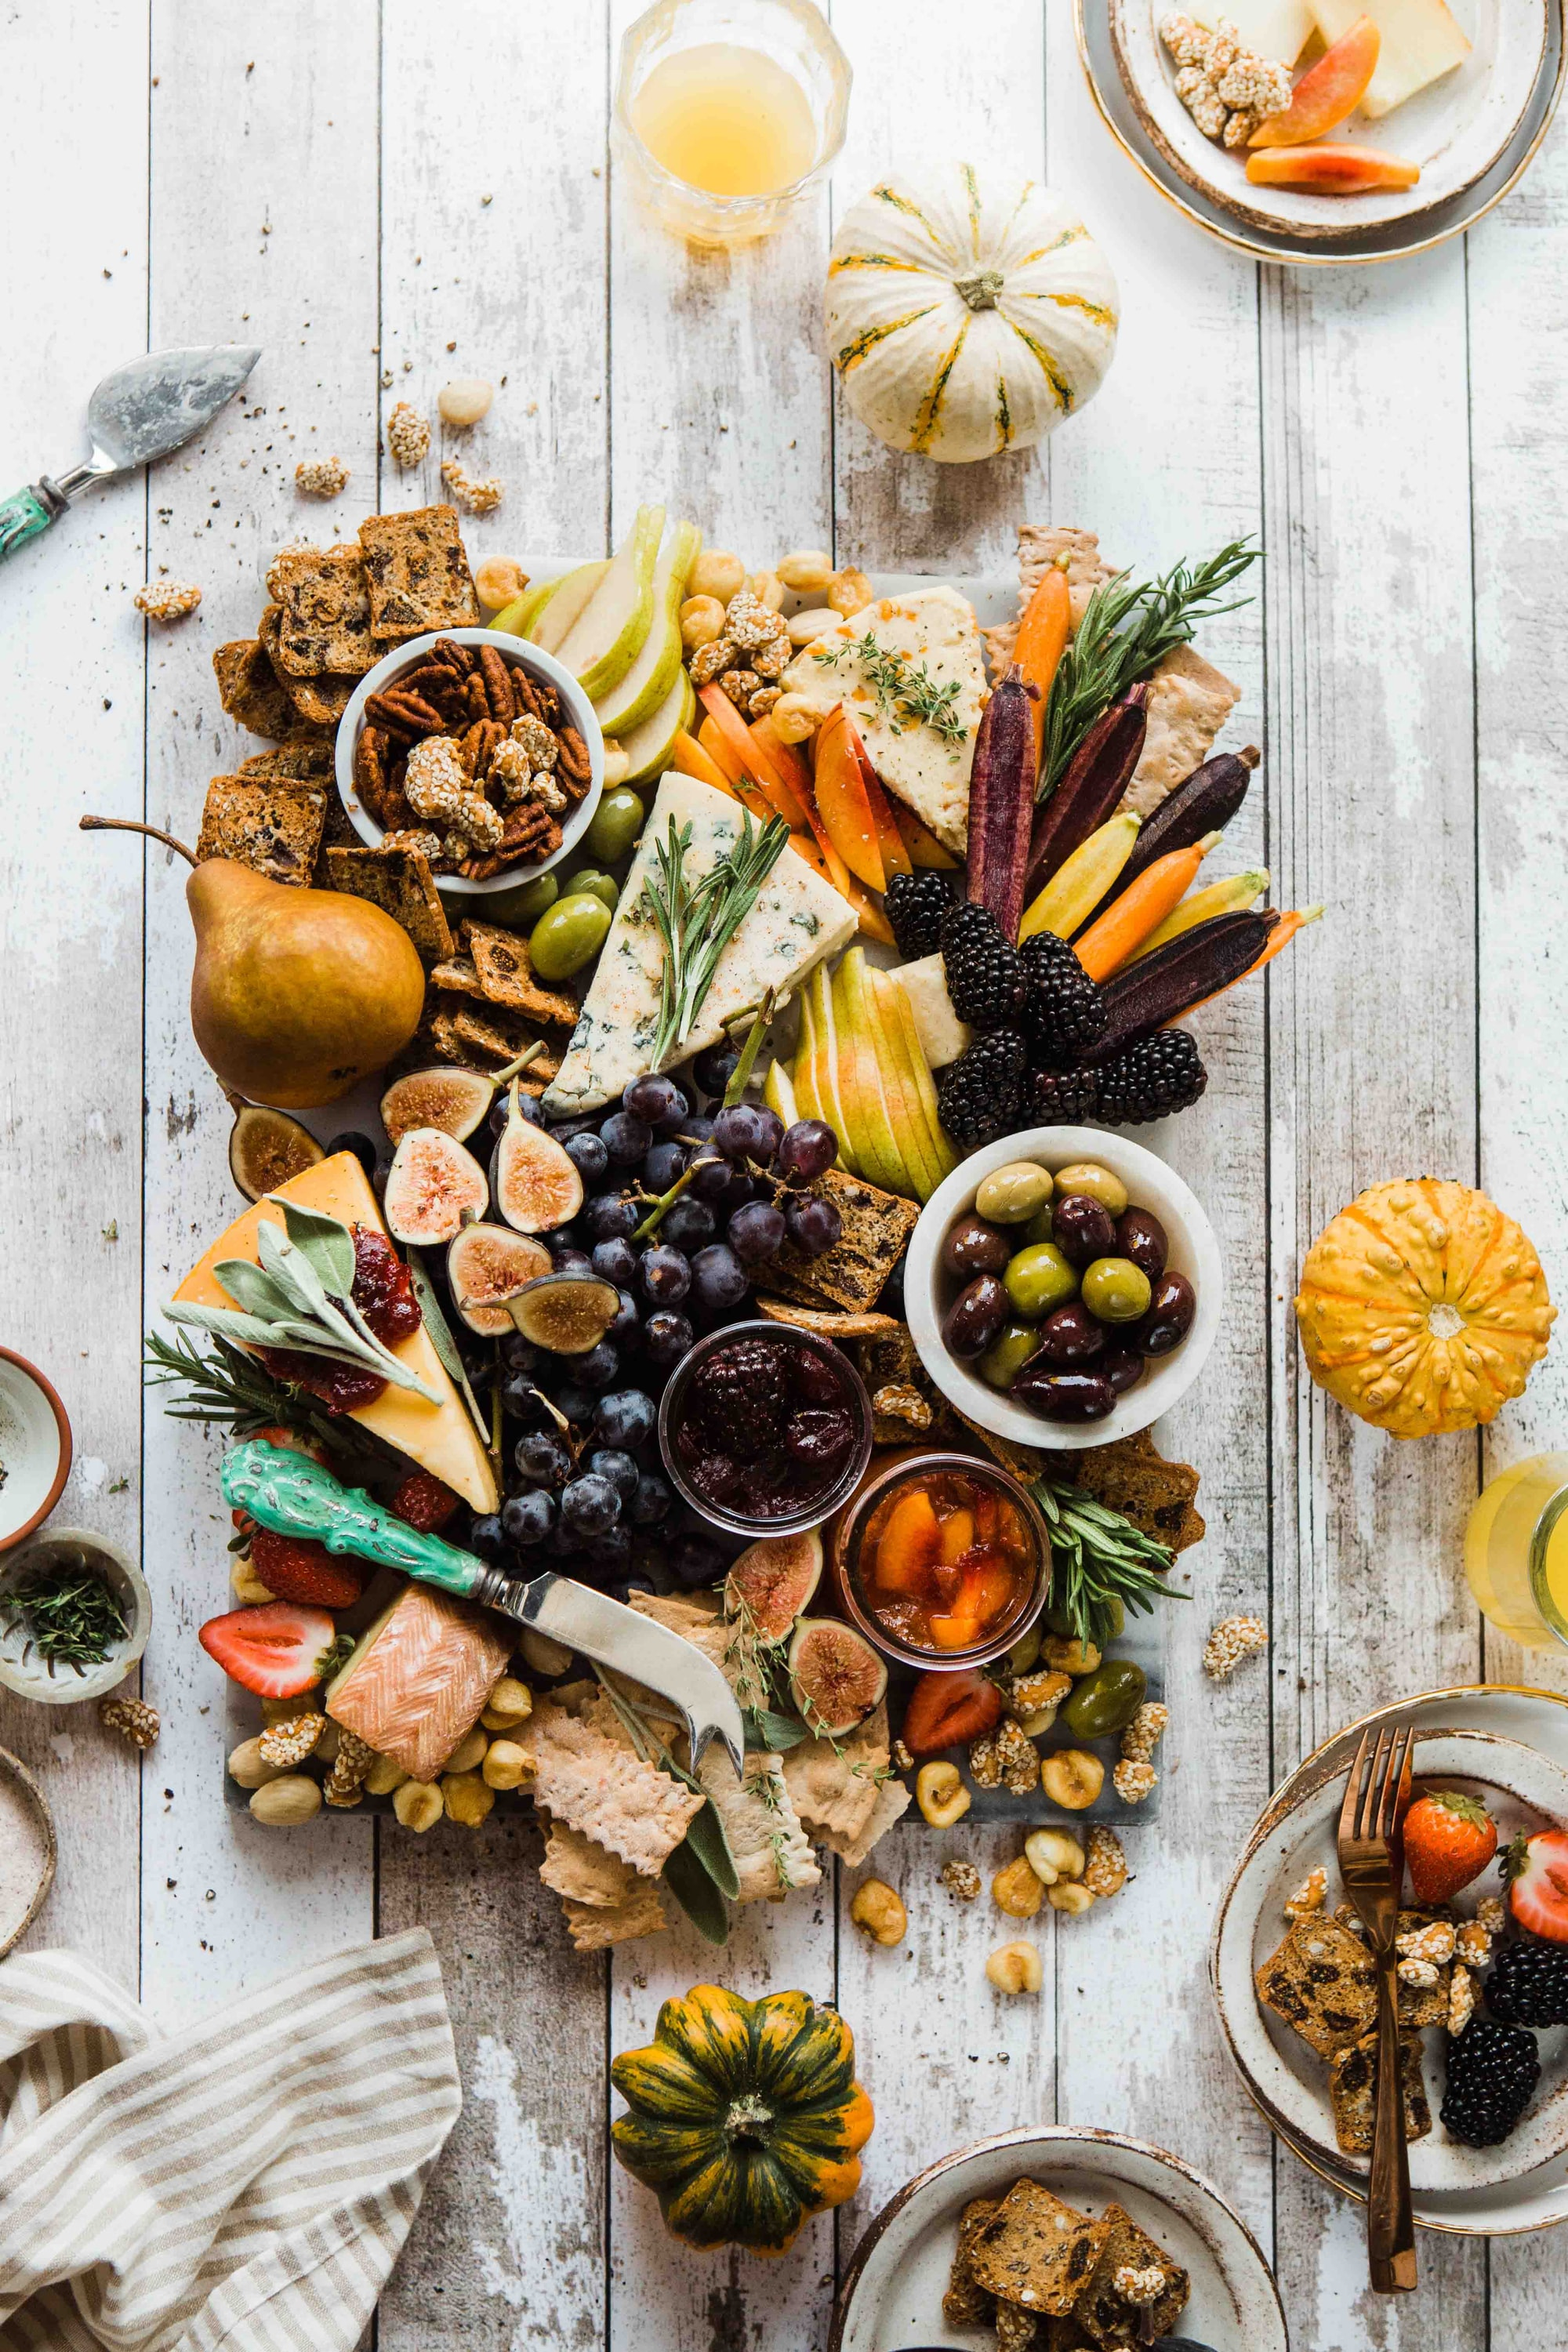 Rustic Autumn cheeseboard